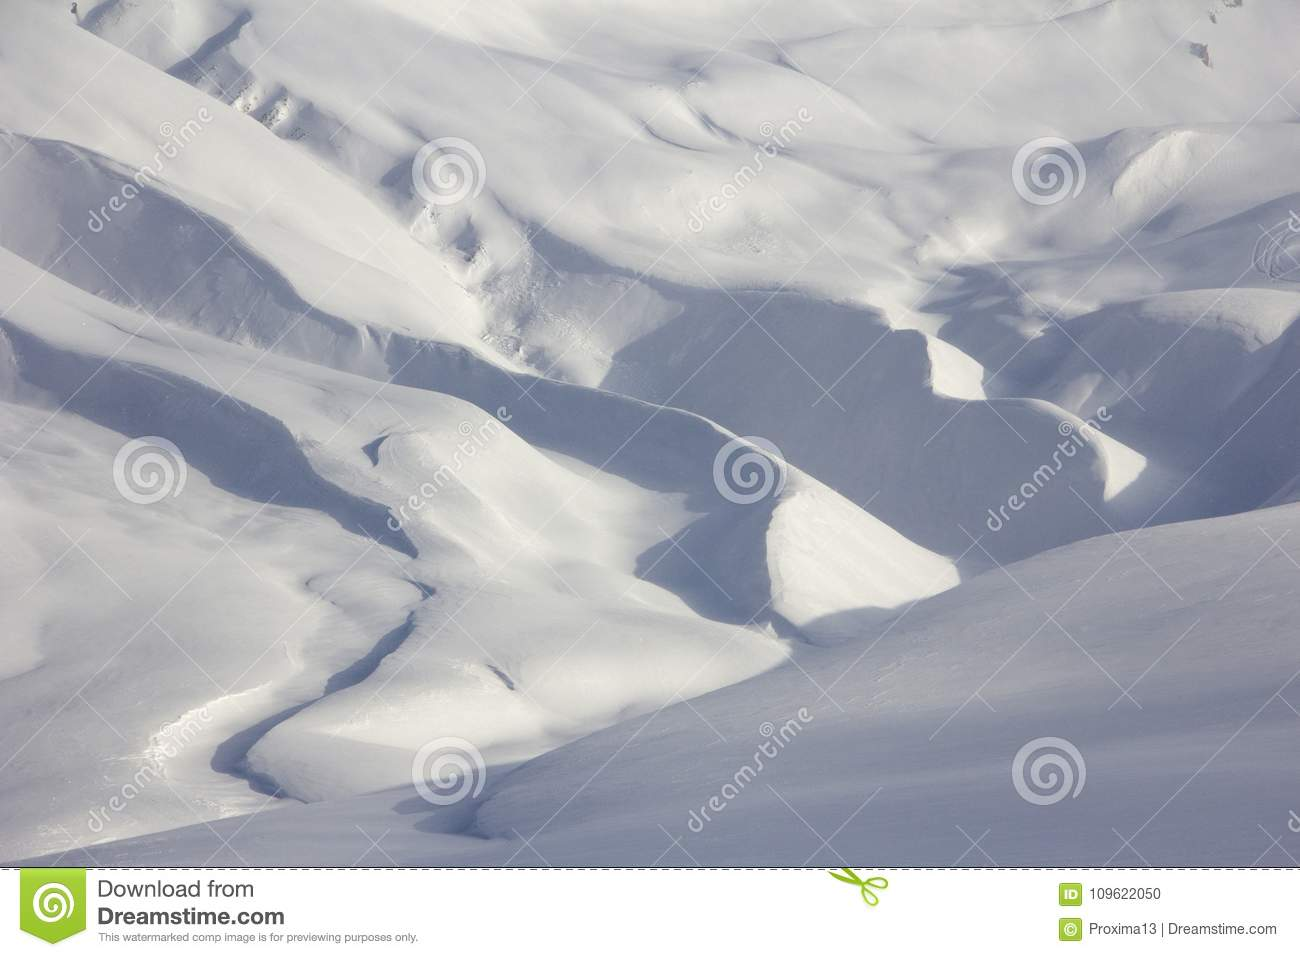 Snowy meandering mountain topography, shades of white and blue